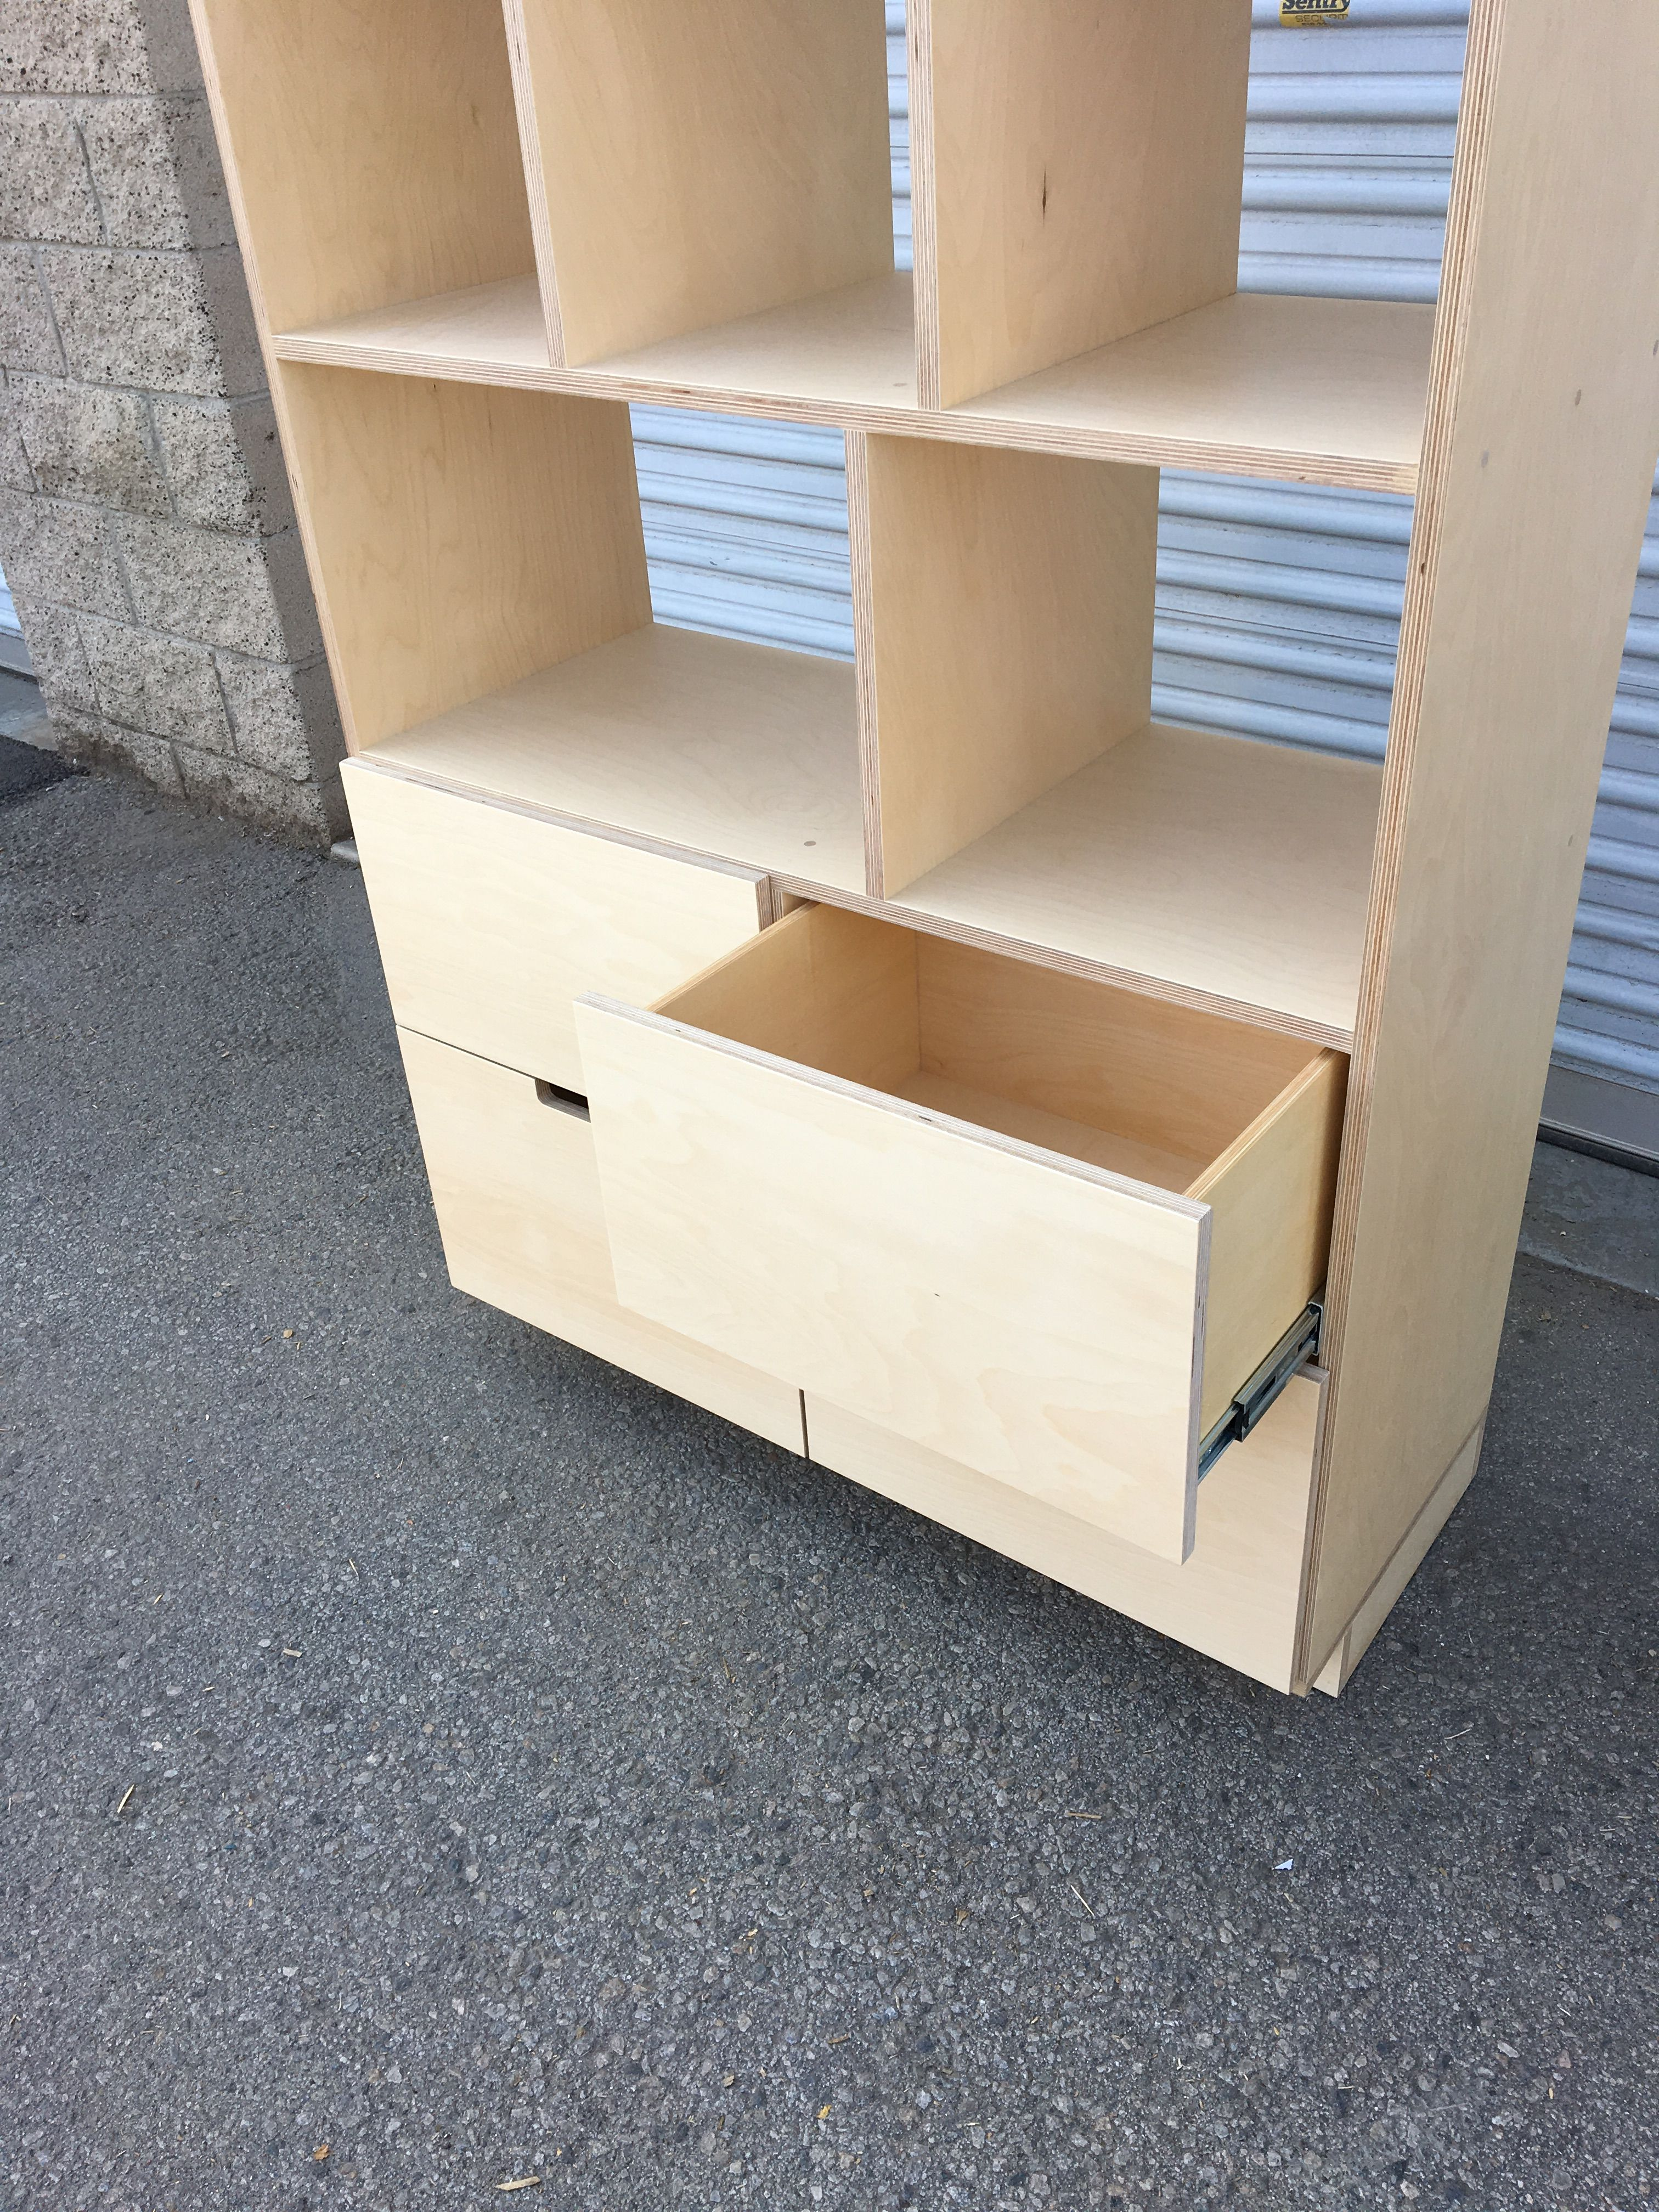 Shelving Unit with Drawers product image 3